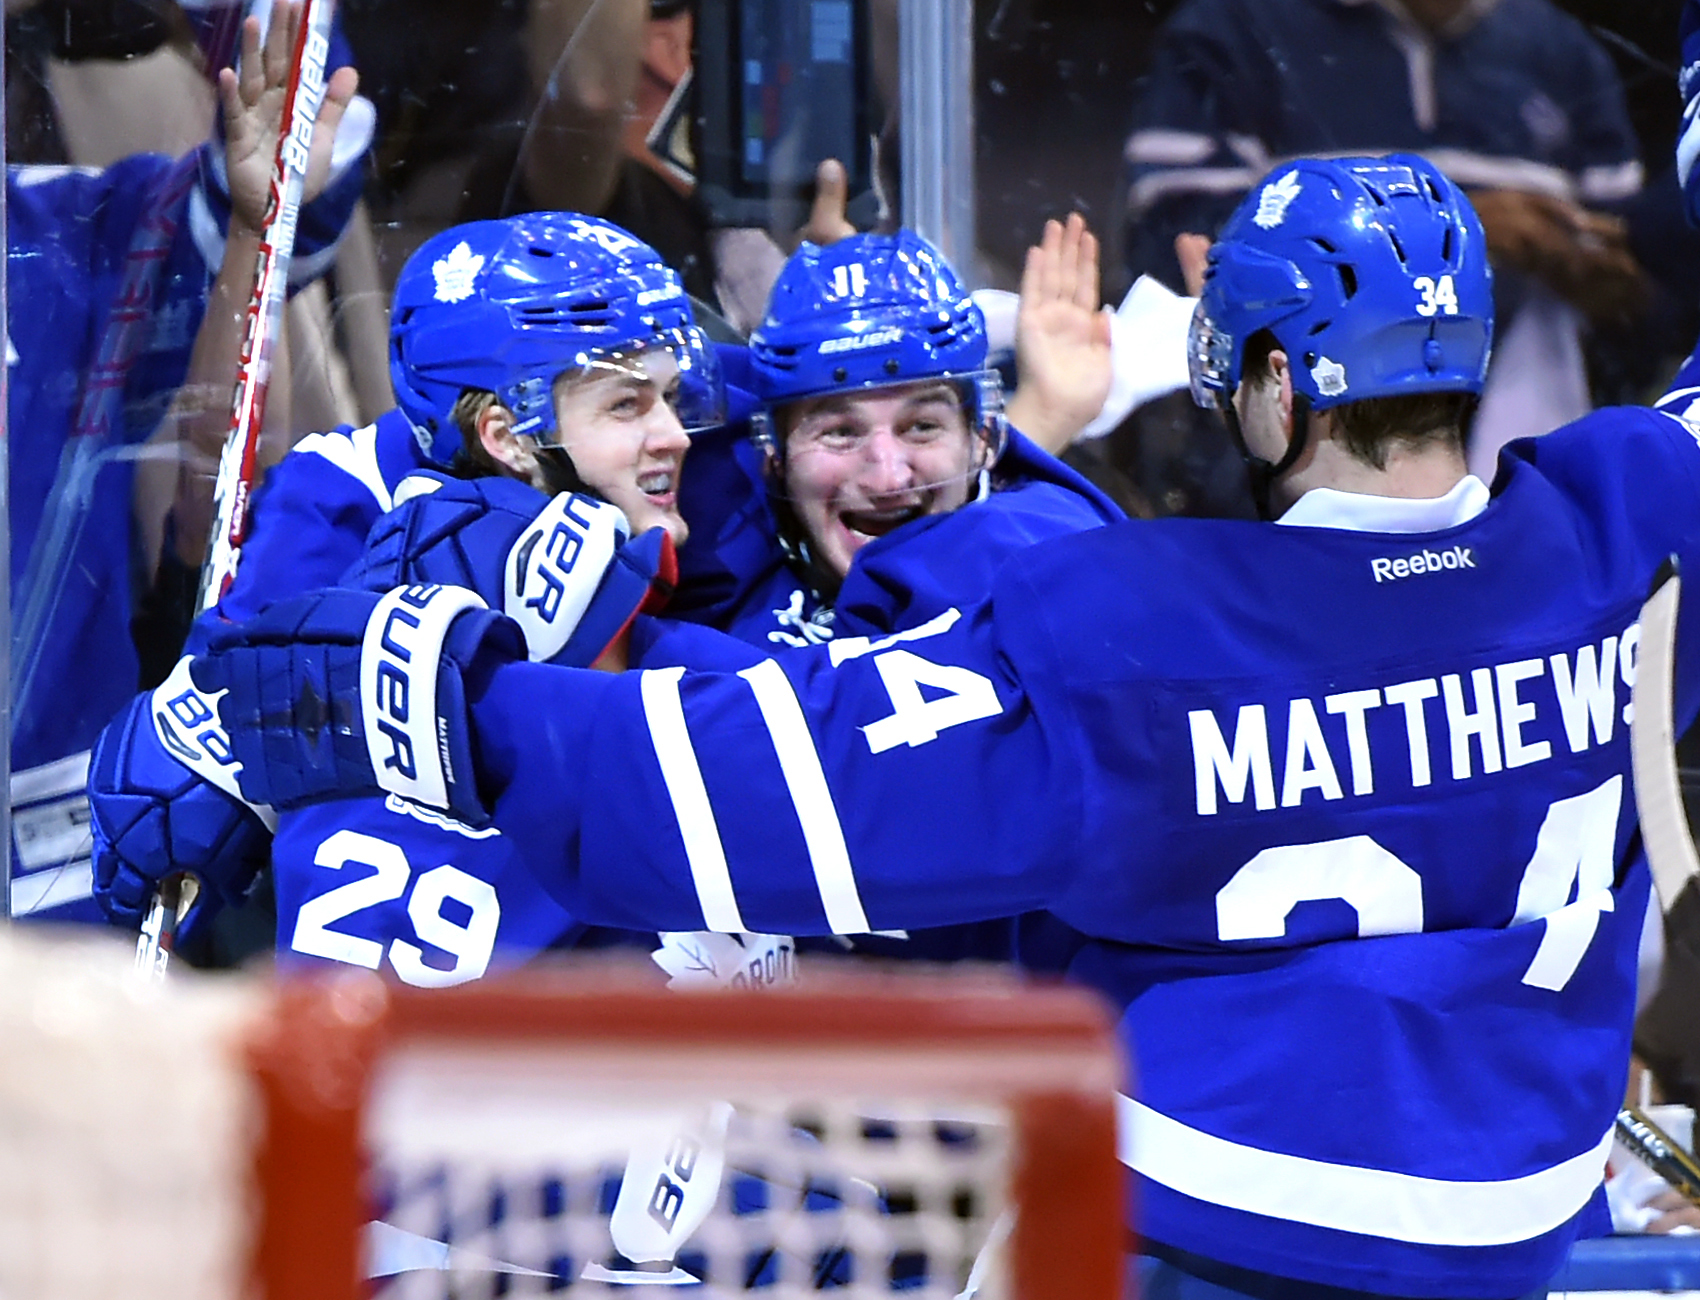 10017599-nhl-stanley-cup-playoffs-washington-capitals-at-toronto-maple-leafs